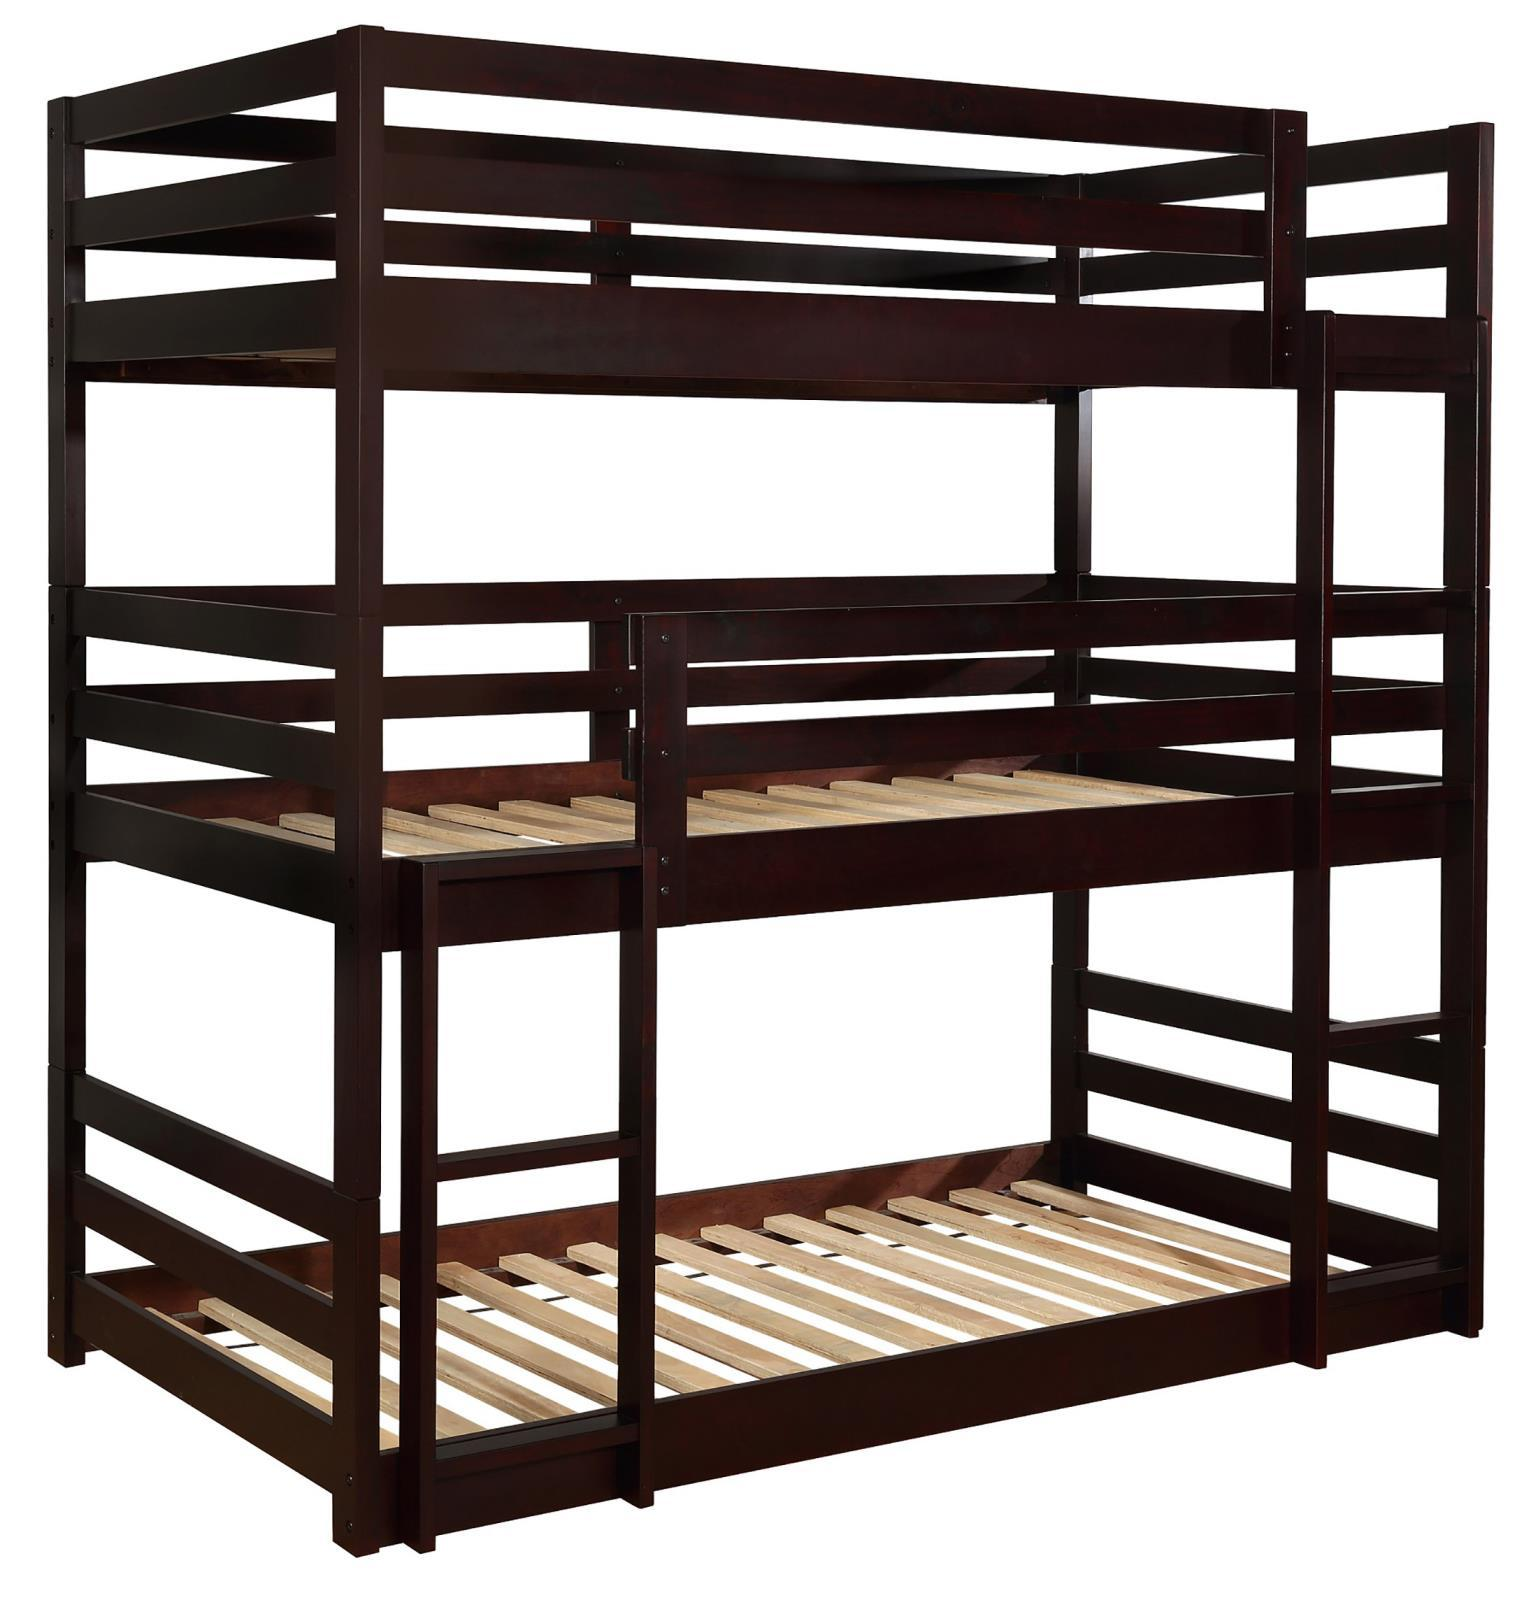 Sandler Triple Bunk Bed - Sandler Twin Triple Bunk Bed Cappuccino